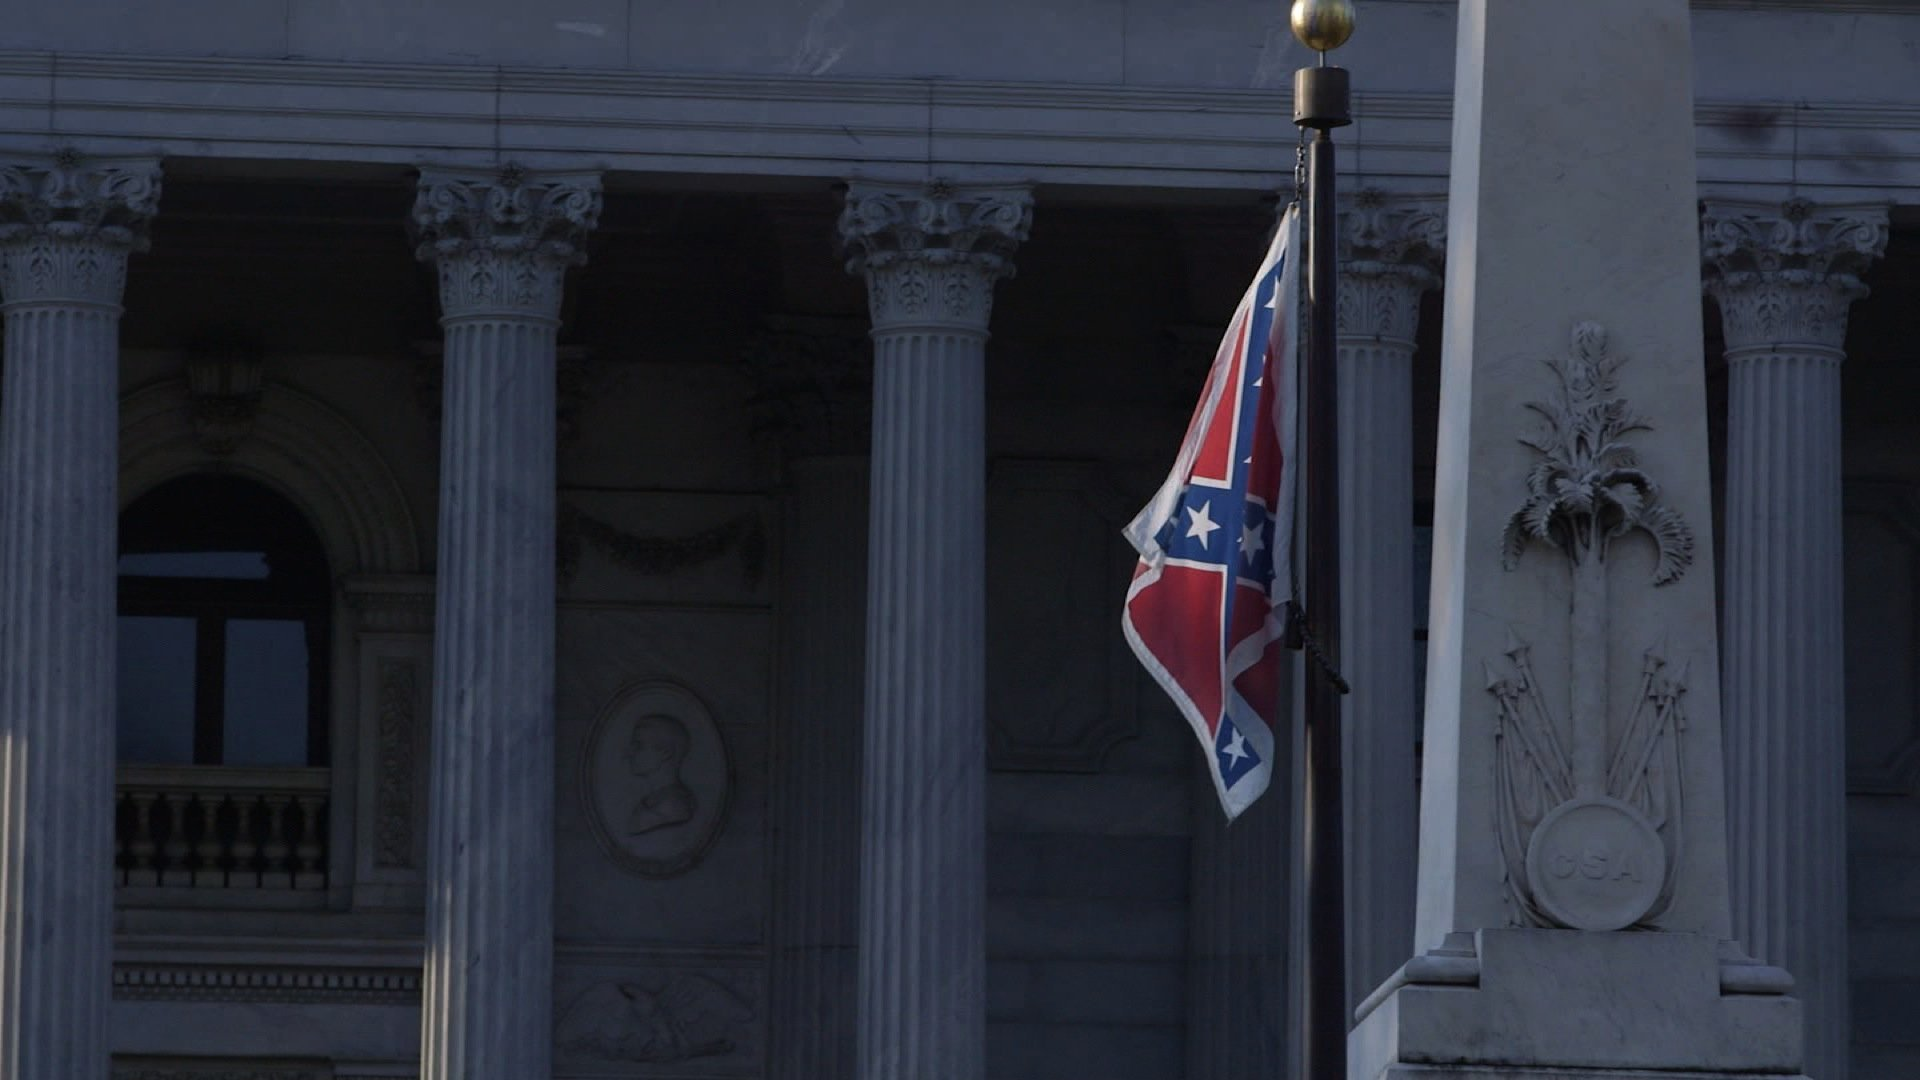 The Confederate battle flag flies near the South Carolina State Capitol building in Columbia in this file image. (Credit: CNN)